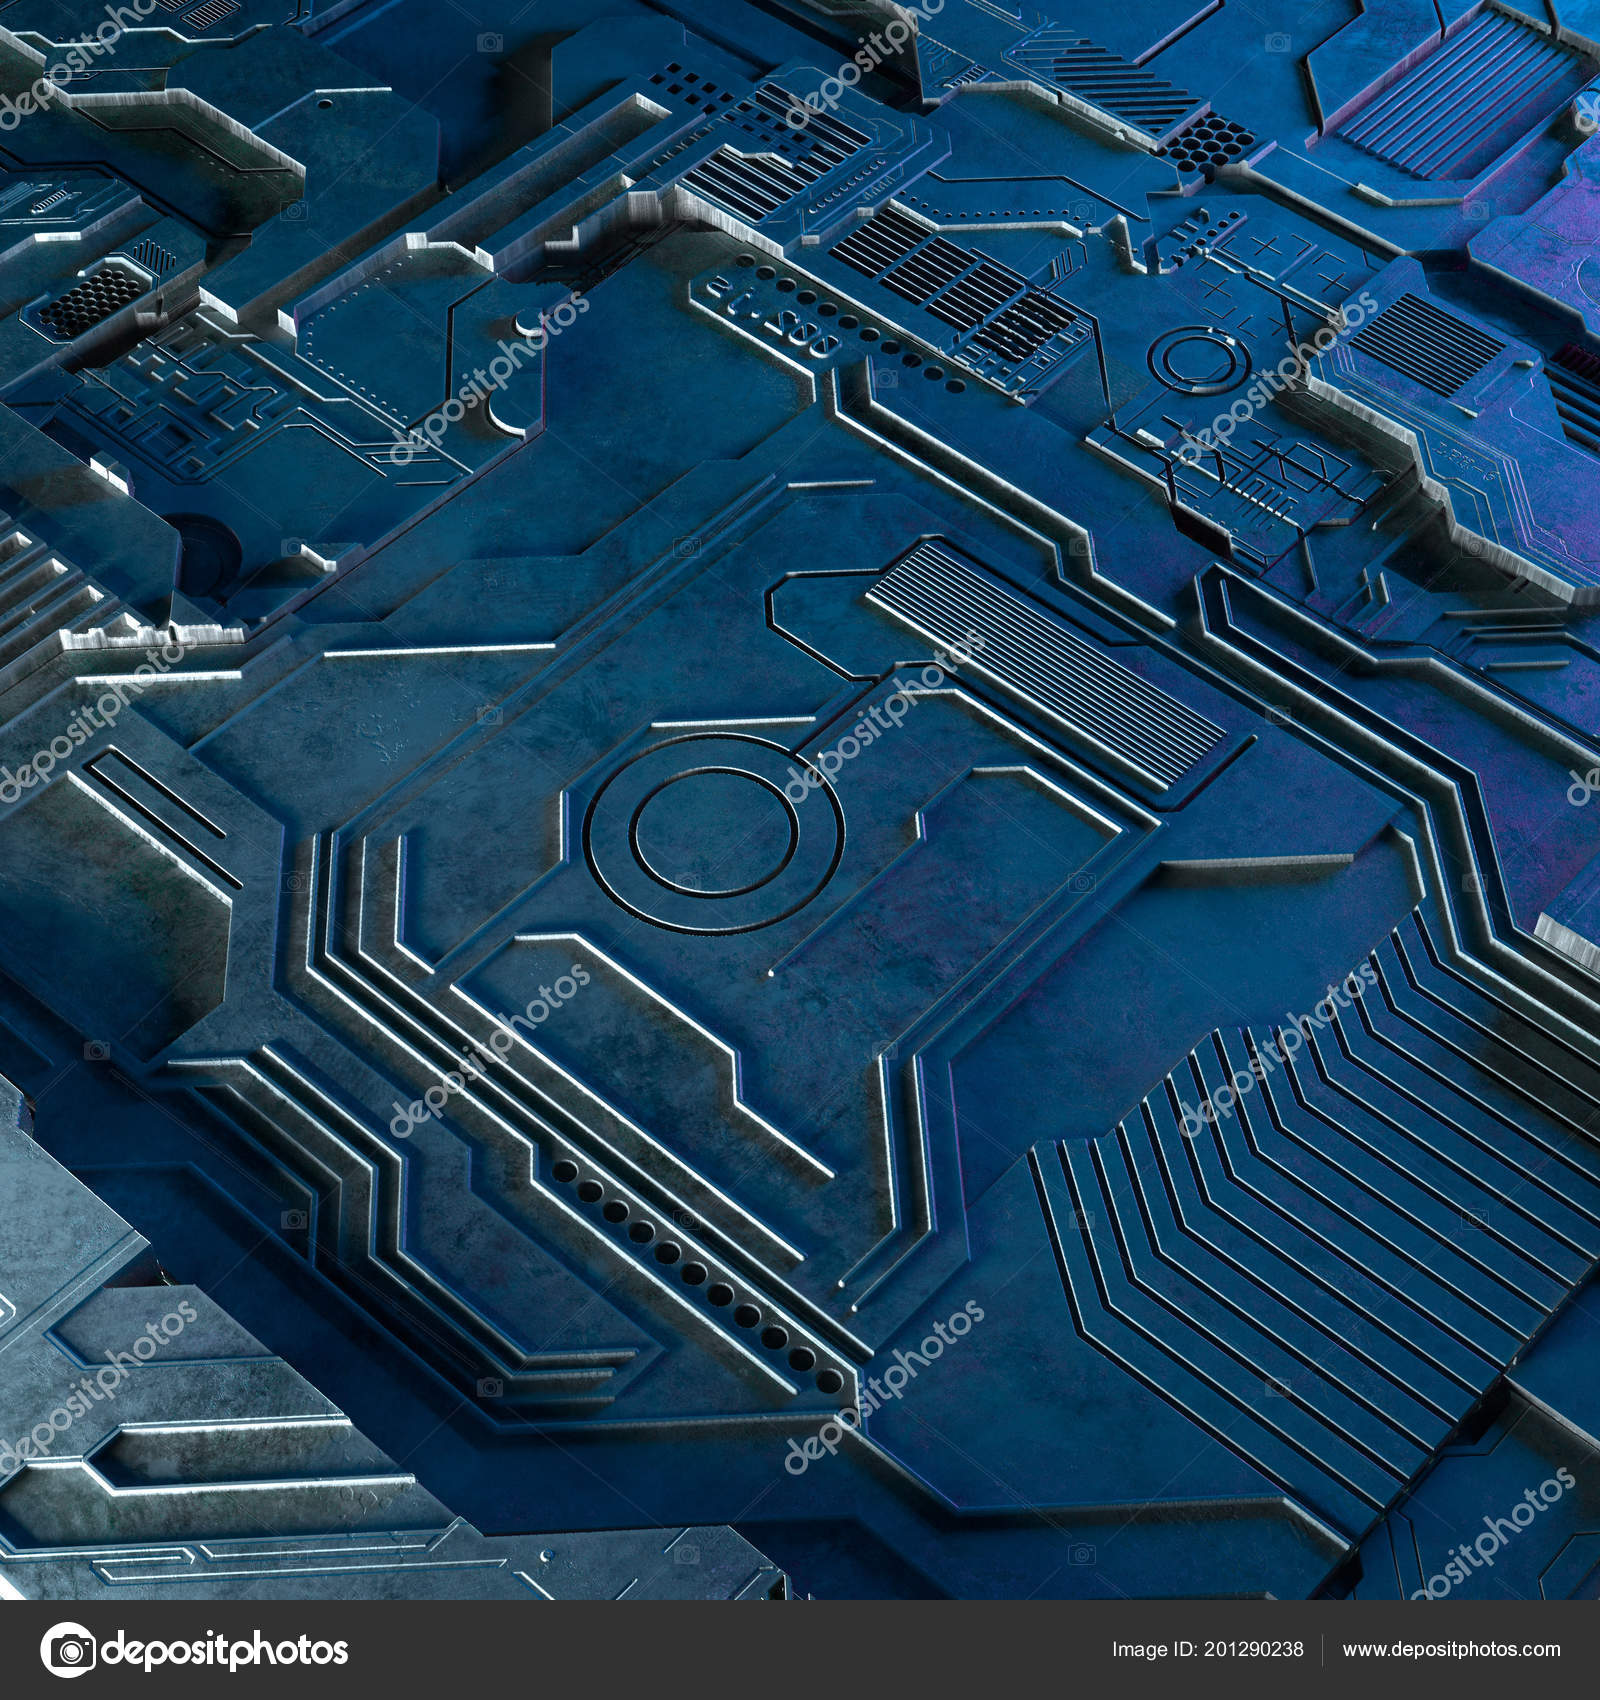 Abstract Technological Background Made Of Different Element Printed Pcb The Printedcircuitboard 3d Royalty Free Stock Photography Rendering Image Circuit Board And Flares